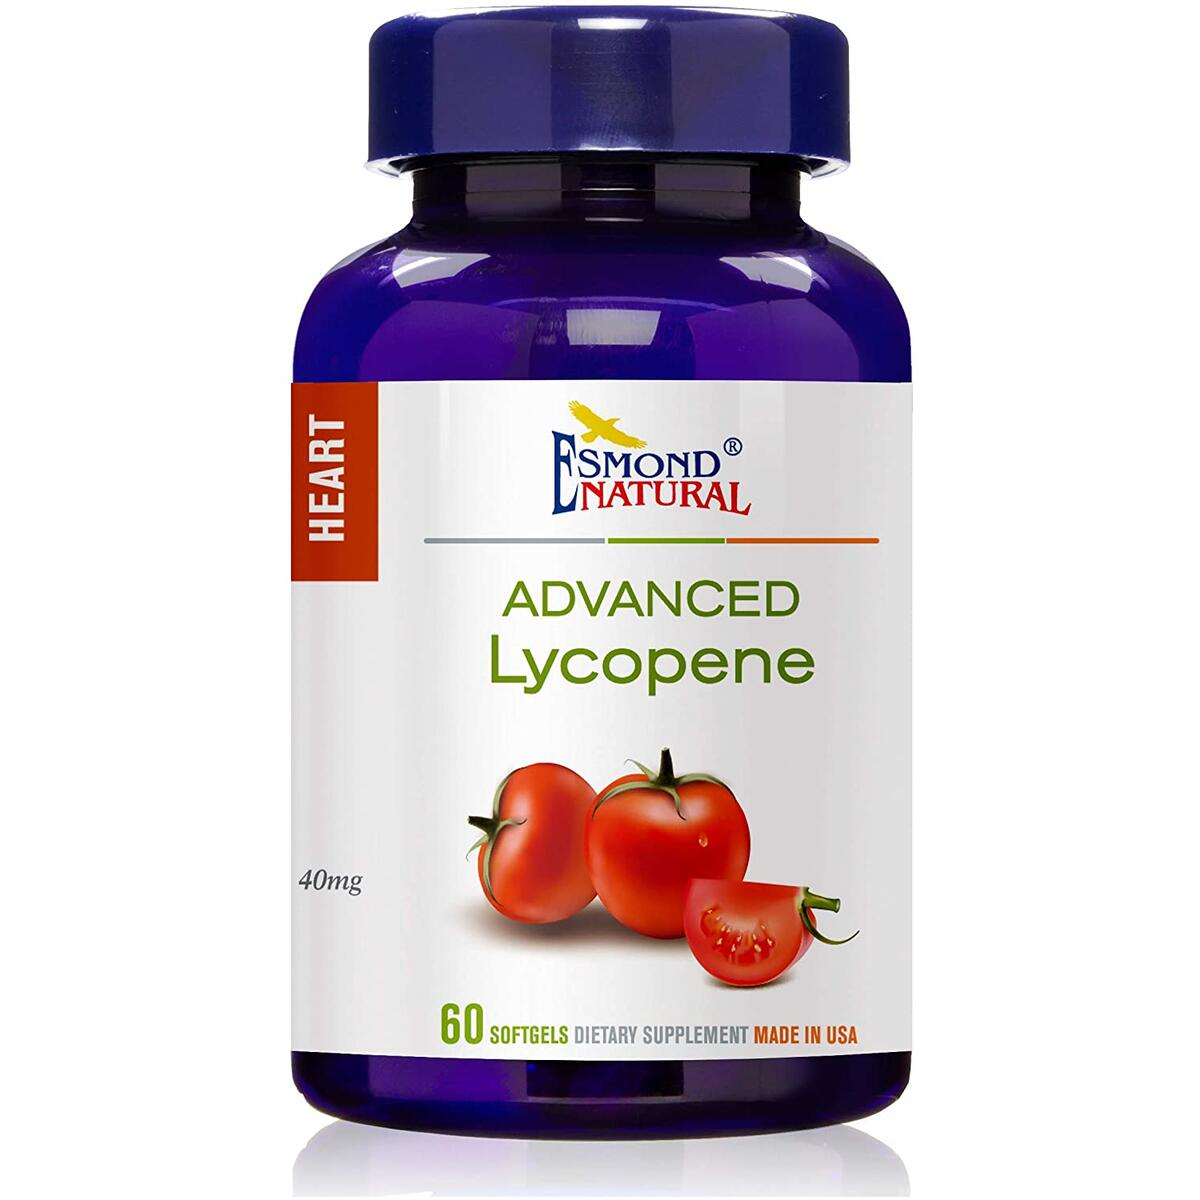 Esmond Natural: Advanced Lycopene (Supports Prostate and Hearth Health), GMP, Natural Product Assn Certified, Made in USA-40mg, 60 Softgels